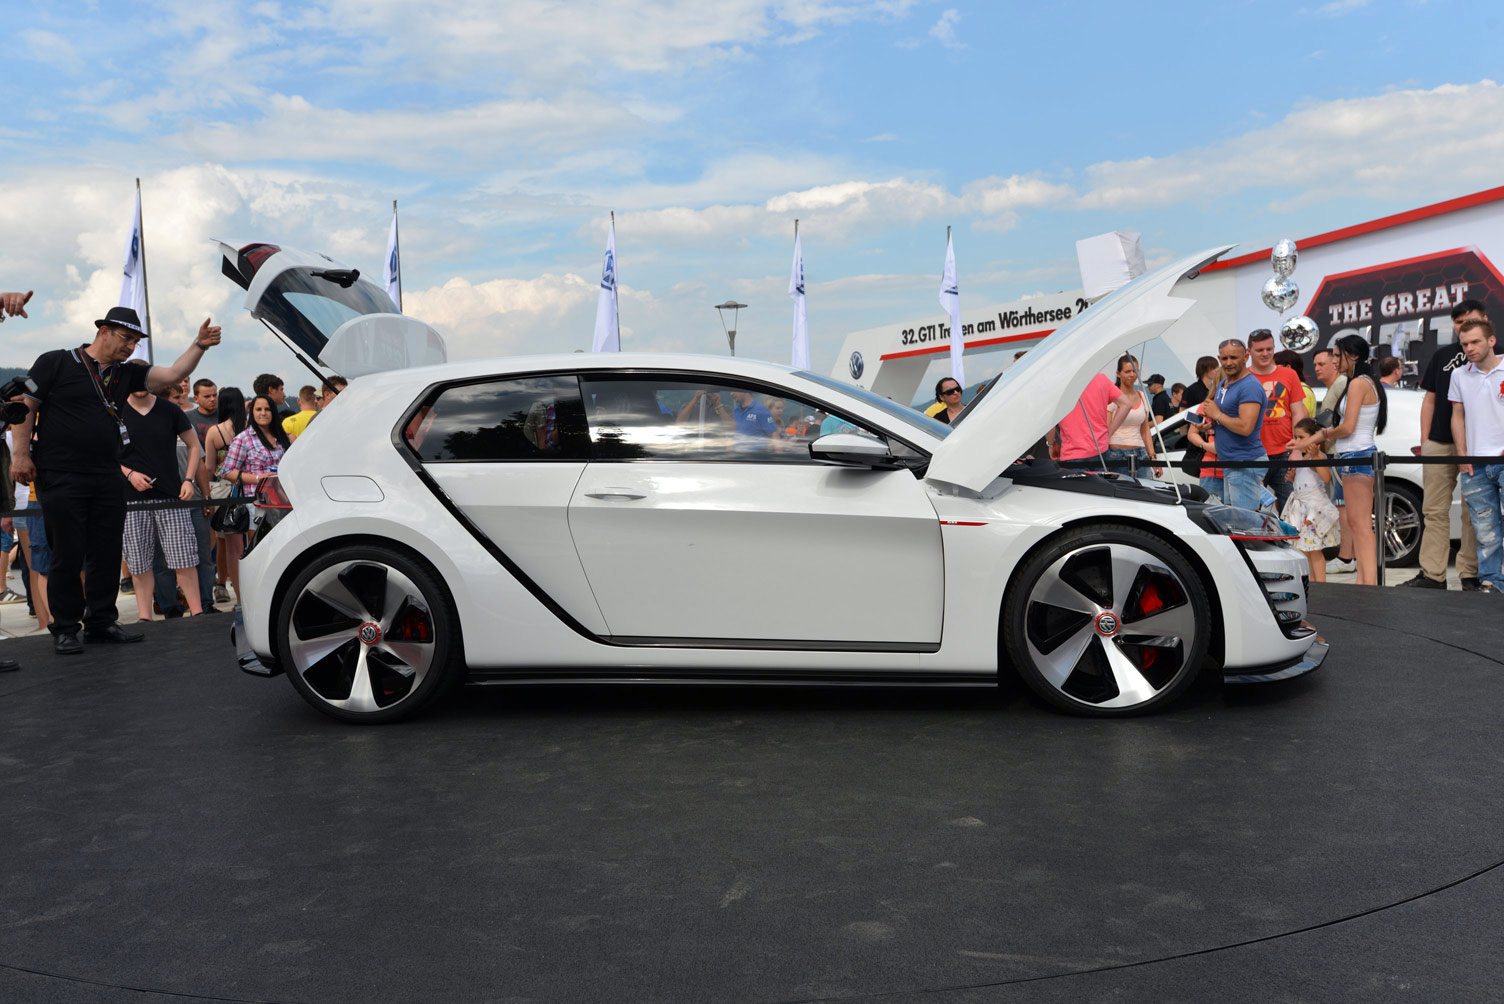 volkswagen-design-vision-gti-worthersee-076